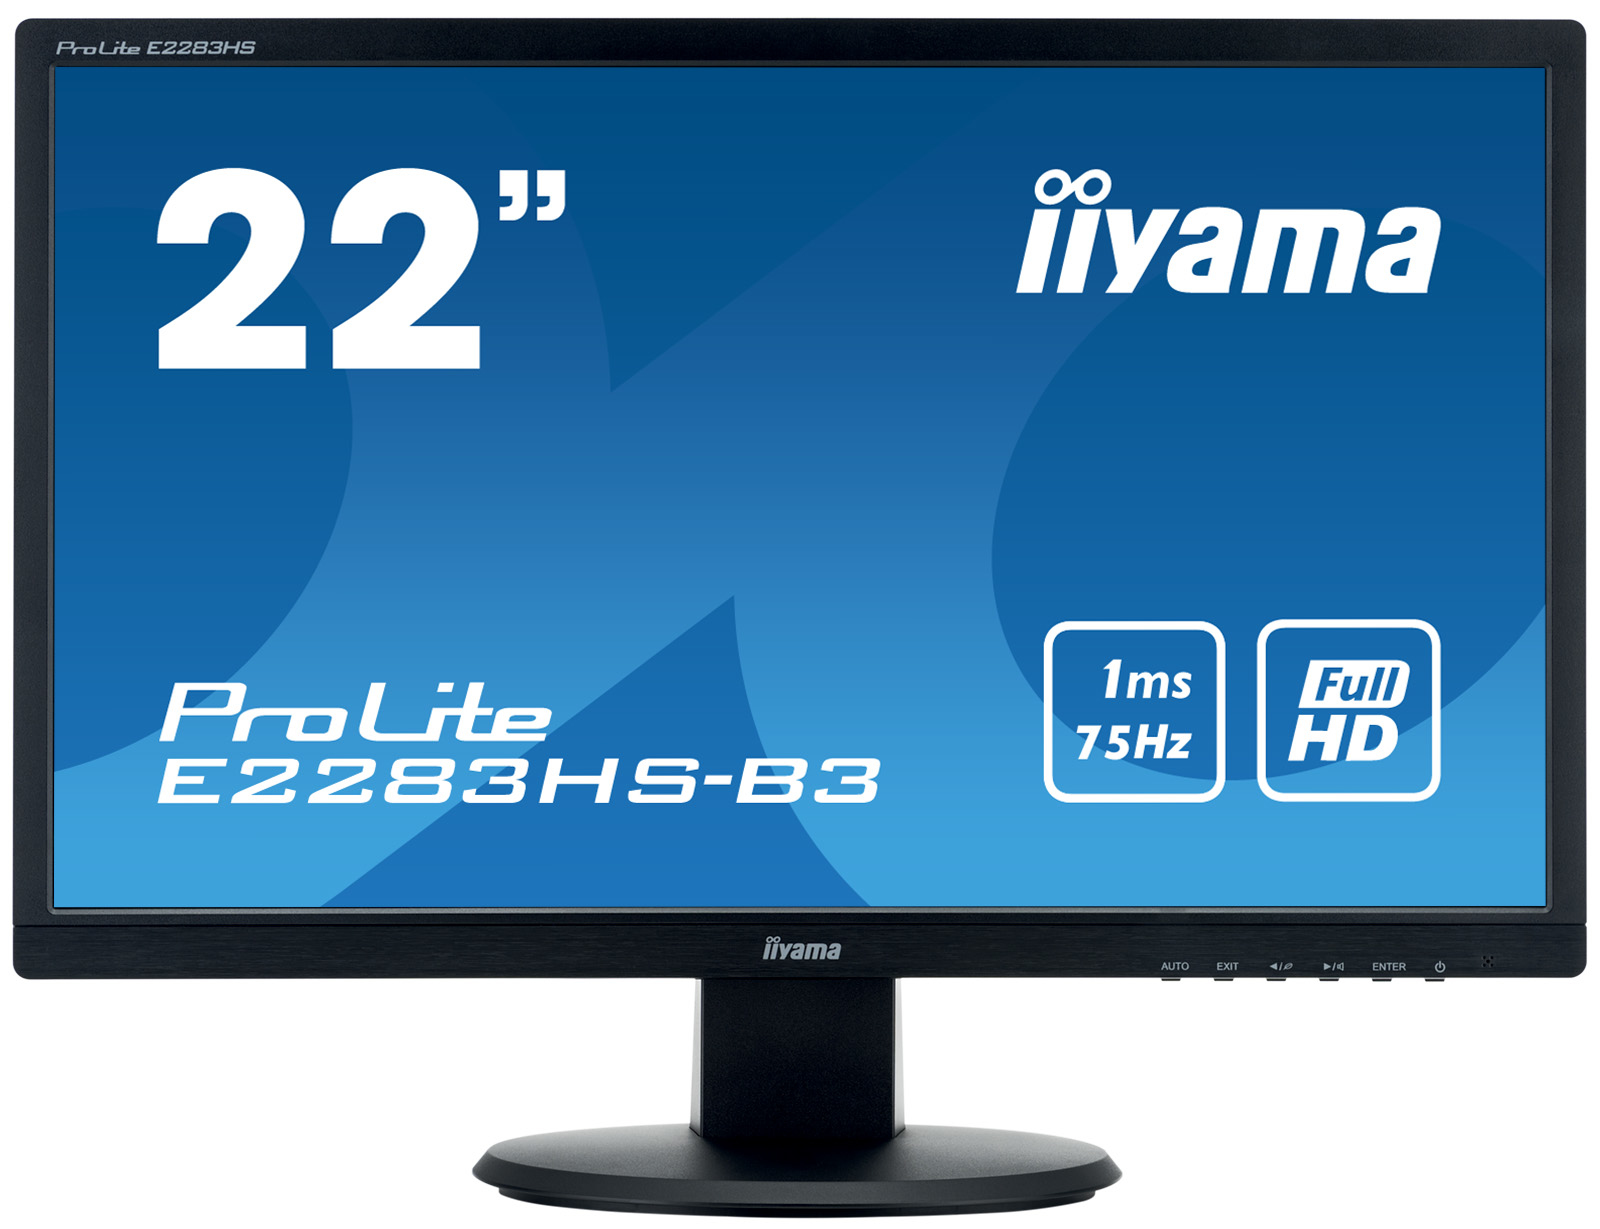 Iiyama ProLite E2283HS-B3 54,7cm 21,5Zoll 16:9 FHD LED-backlit monitor 1ms 12000000:1 250cd/m2 1000:1 VGA DisplayPort HDMI